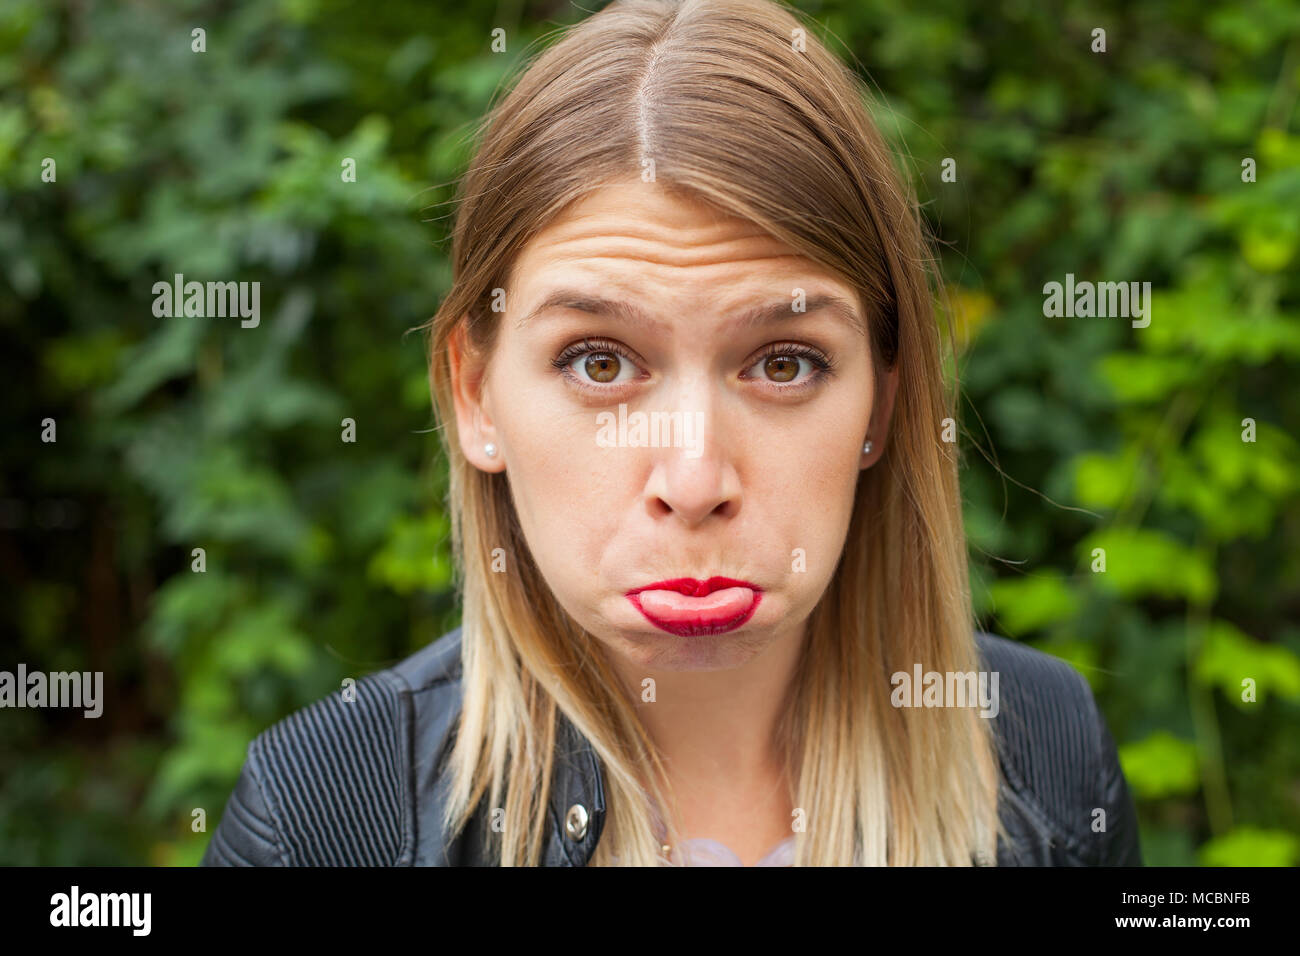 Young woman making a grimace outdoor, green background. Sad - grumpy expression - Stock Image